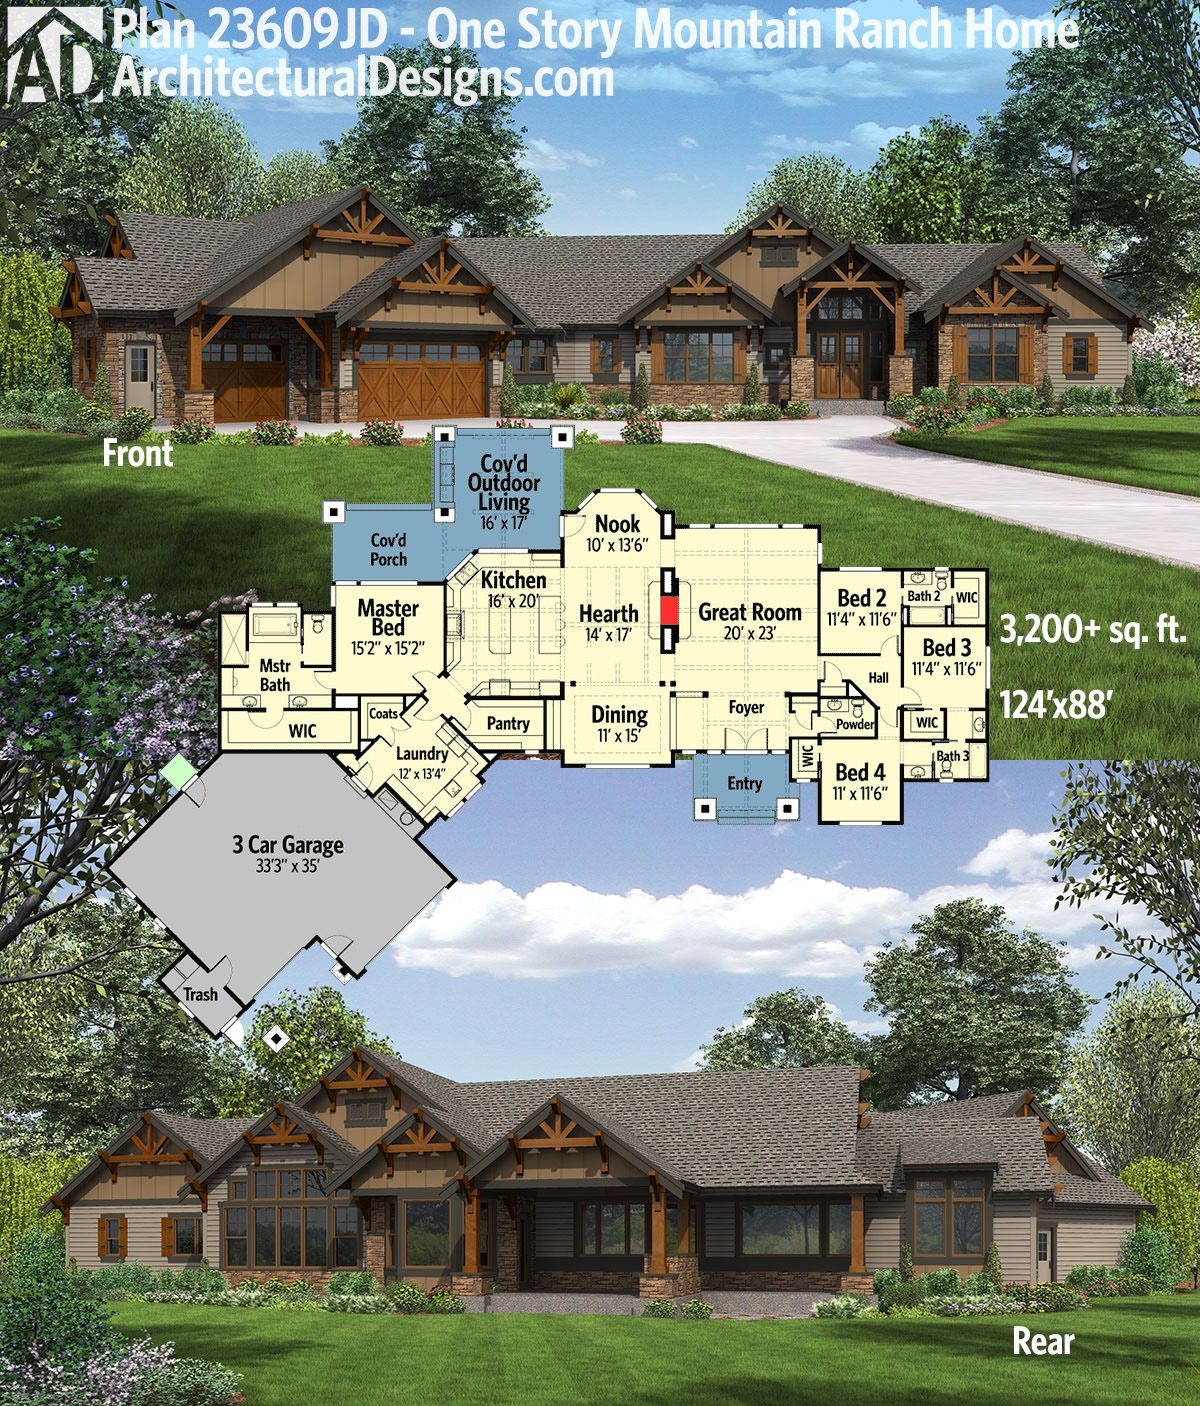 Plan 23609jd one story mountain ranch home with options for Ranch home house plans